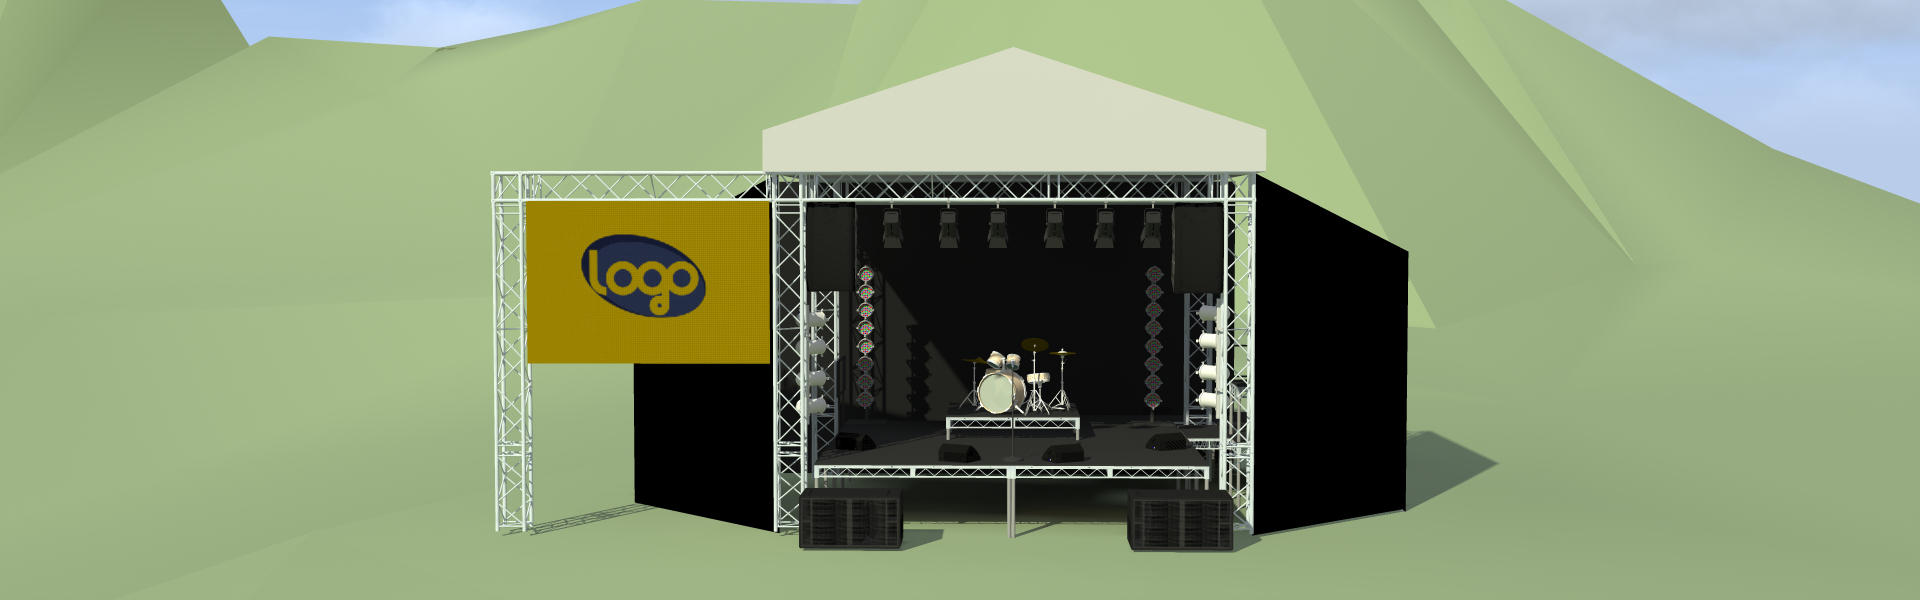 Stage-a-technika